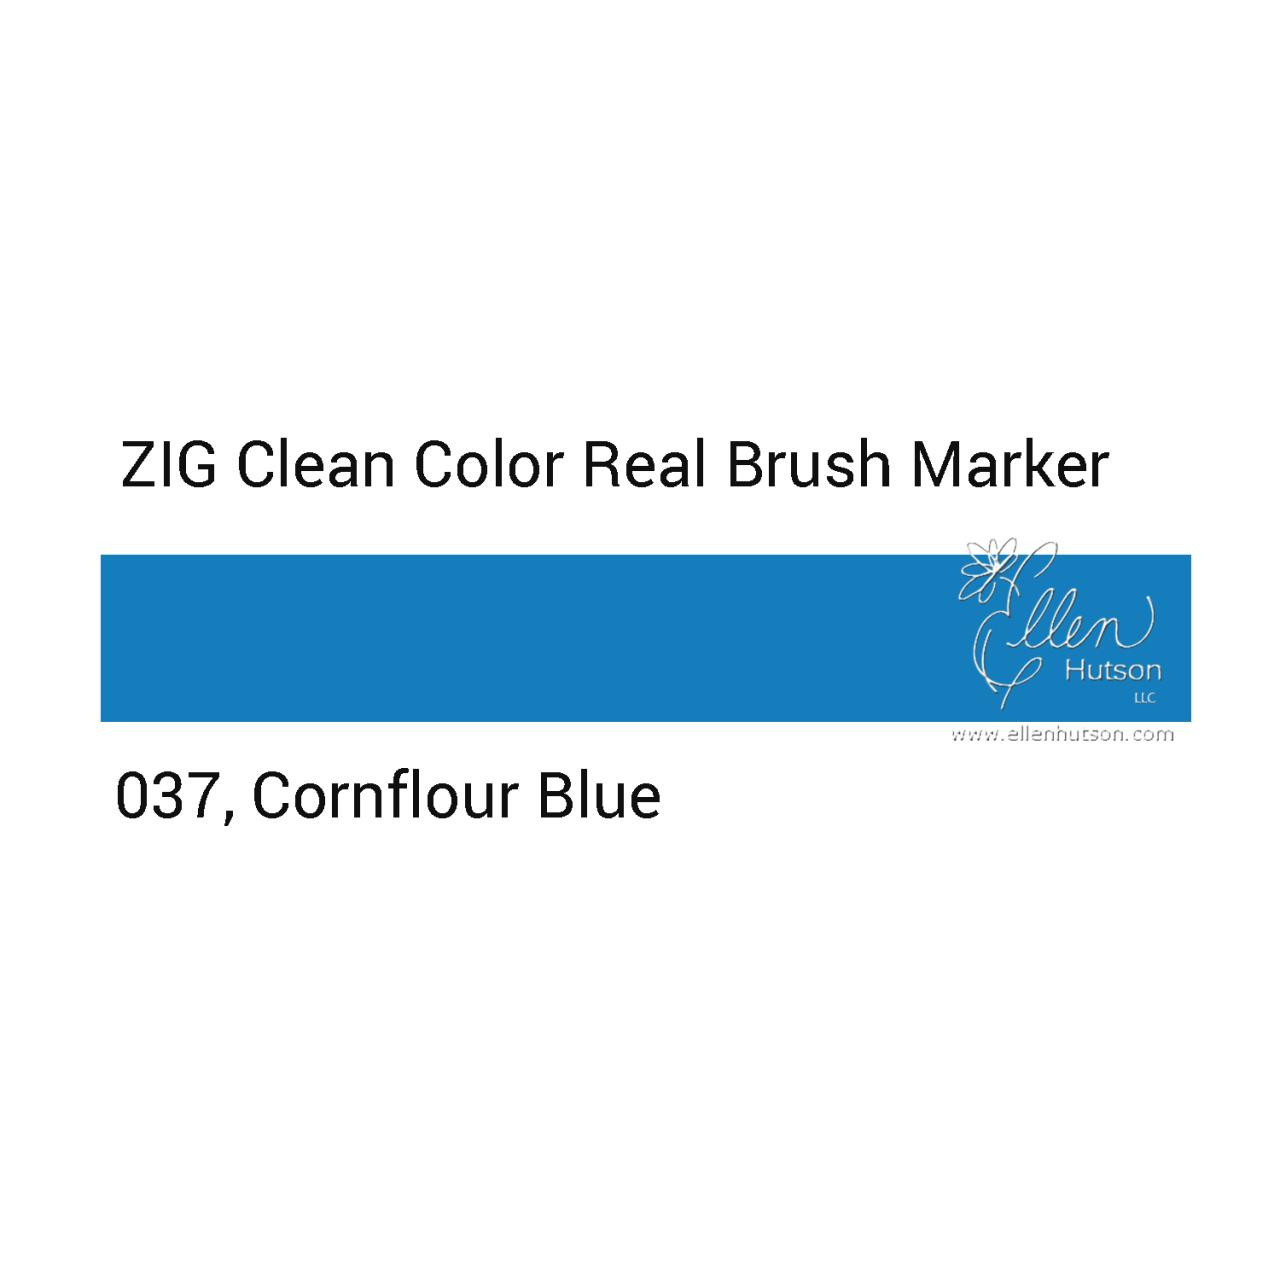 037 - Cornflower Blue, ZIG Clean Color Real Brush Marker -